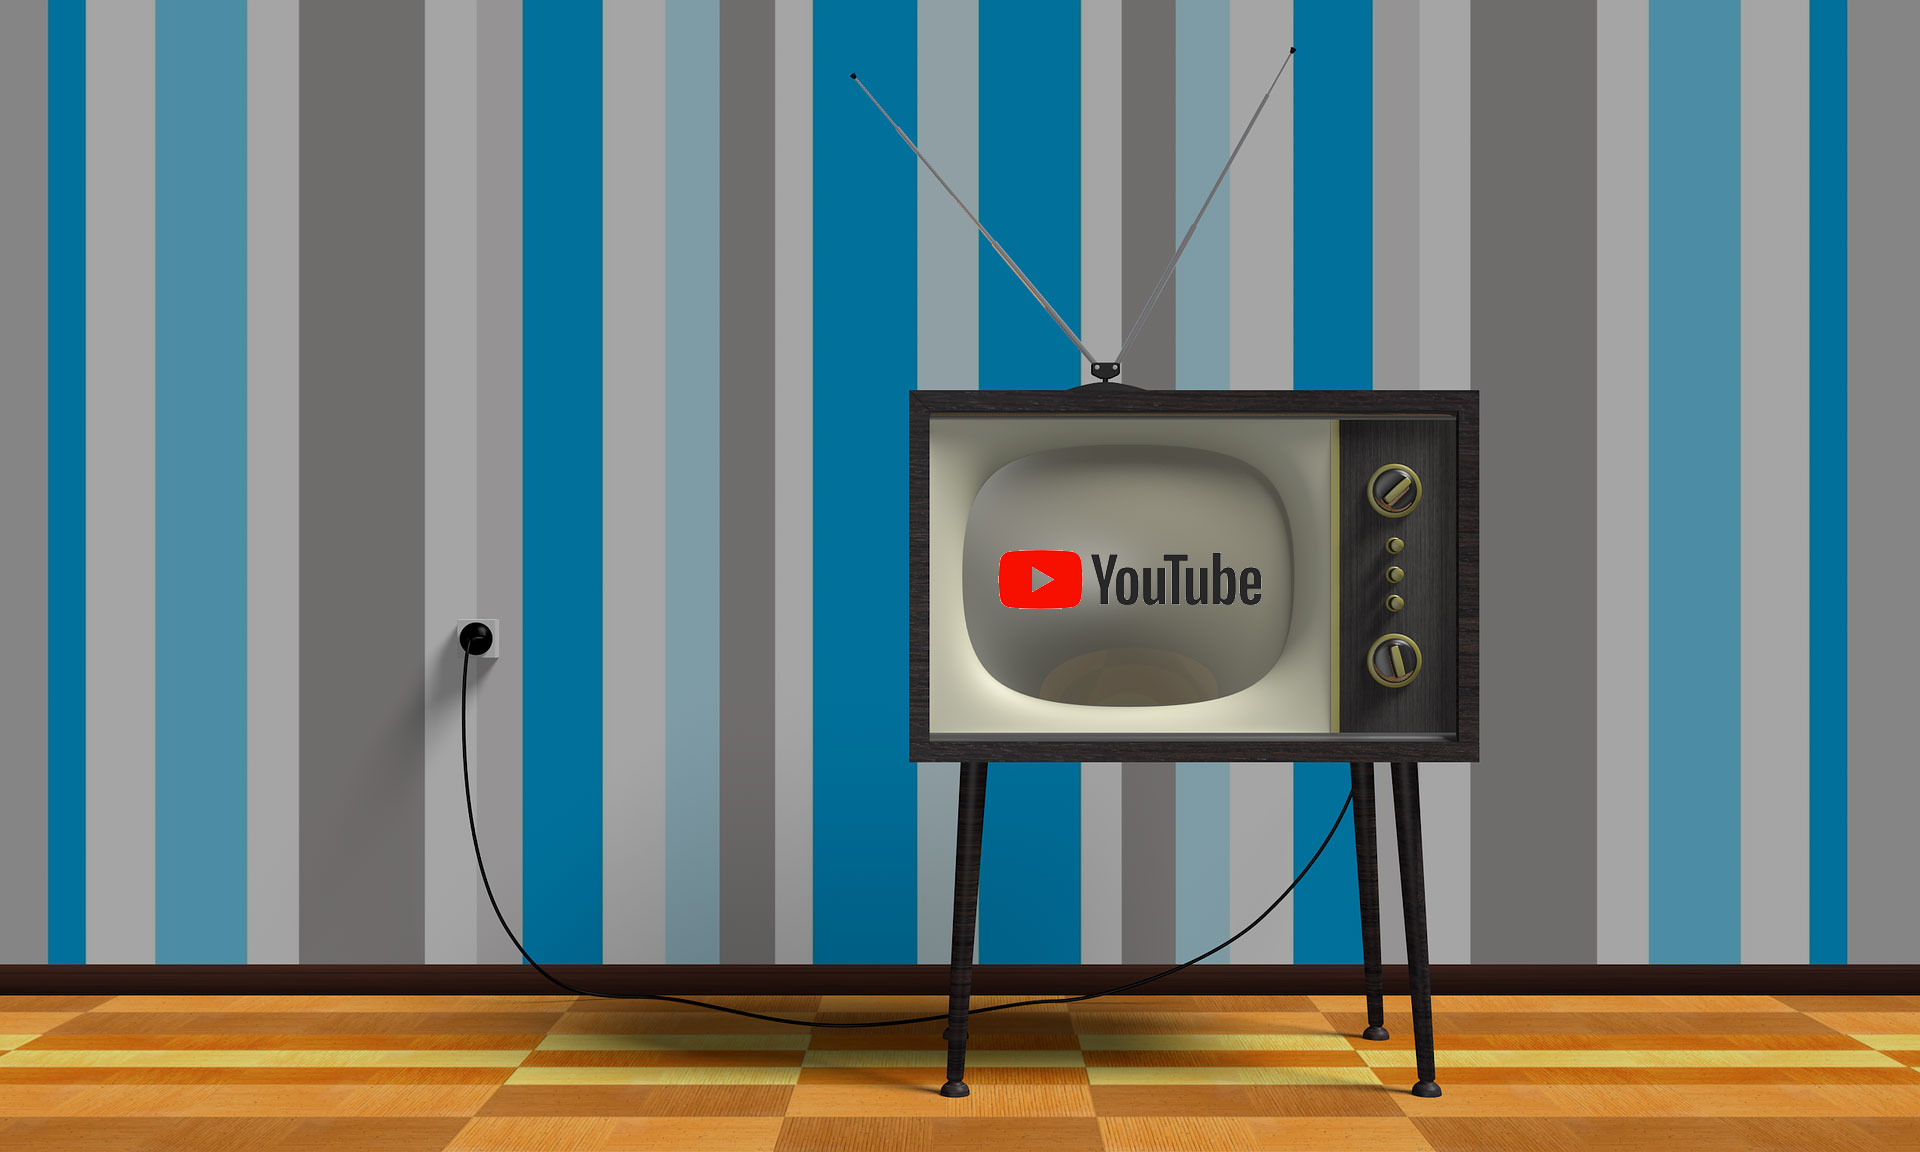 YouTube Retro TV